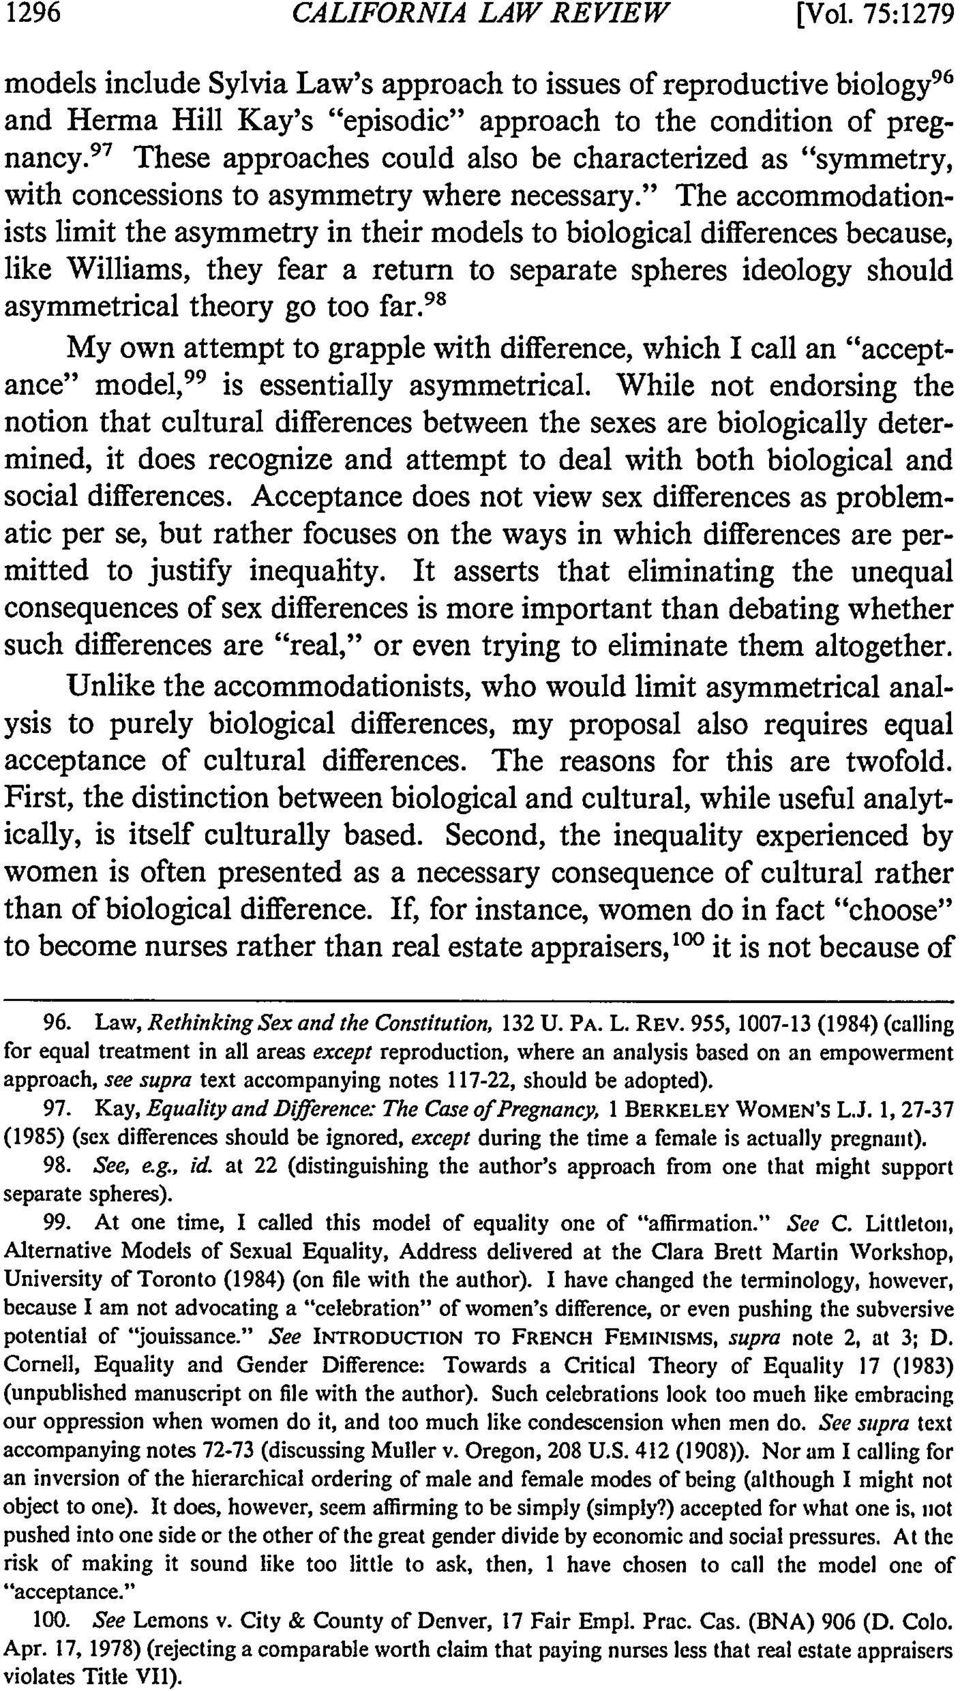 """ The accommodationists limit the asymmetry in their models to biological differences because, like Williams, they fear a return to separate spheres ideology should asymmetrical theory go too far."